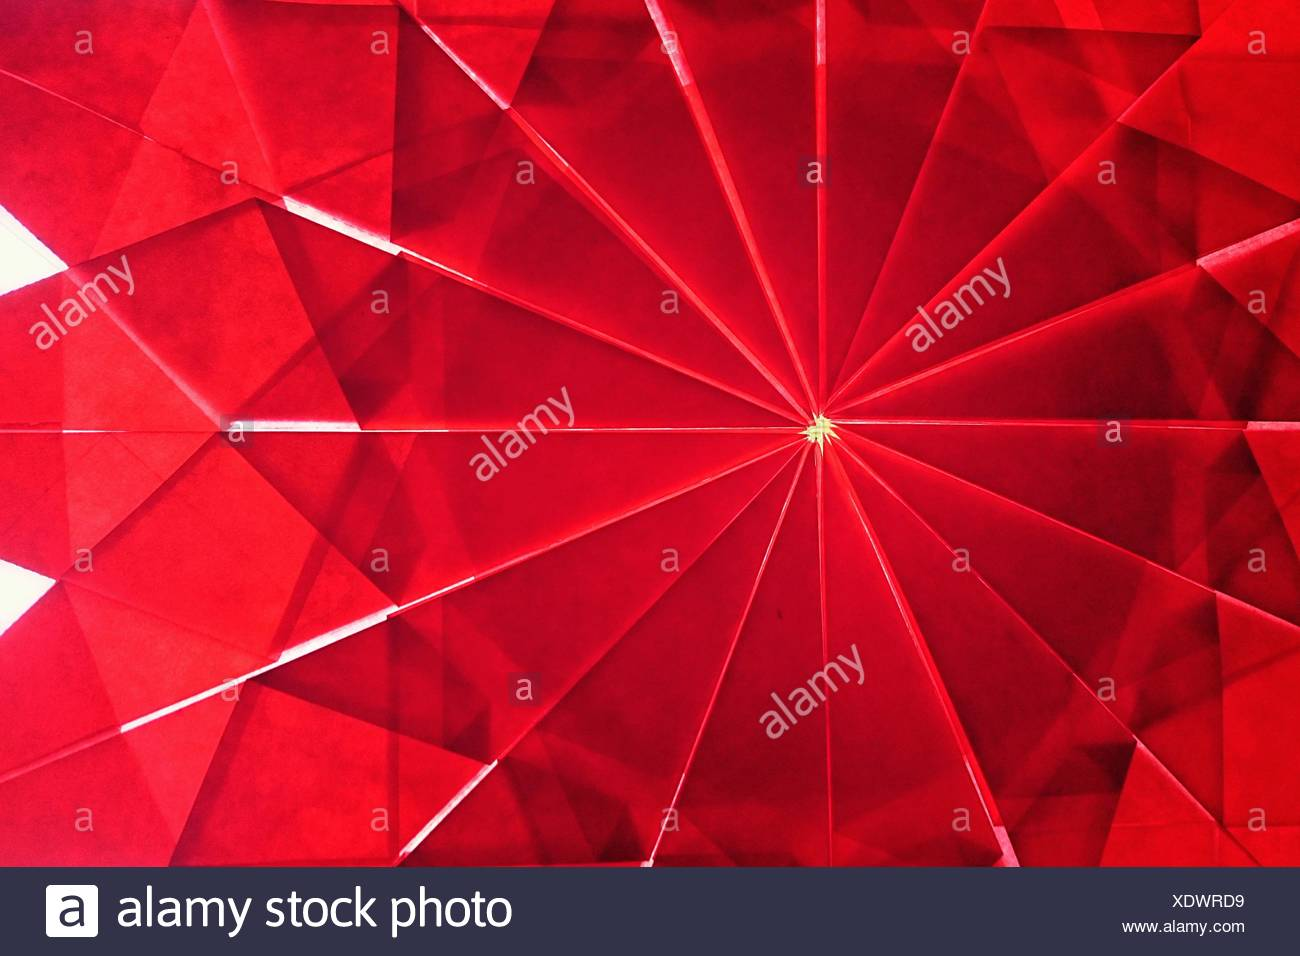 Close-Up Of Red Paper Art - Stock Image